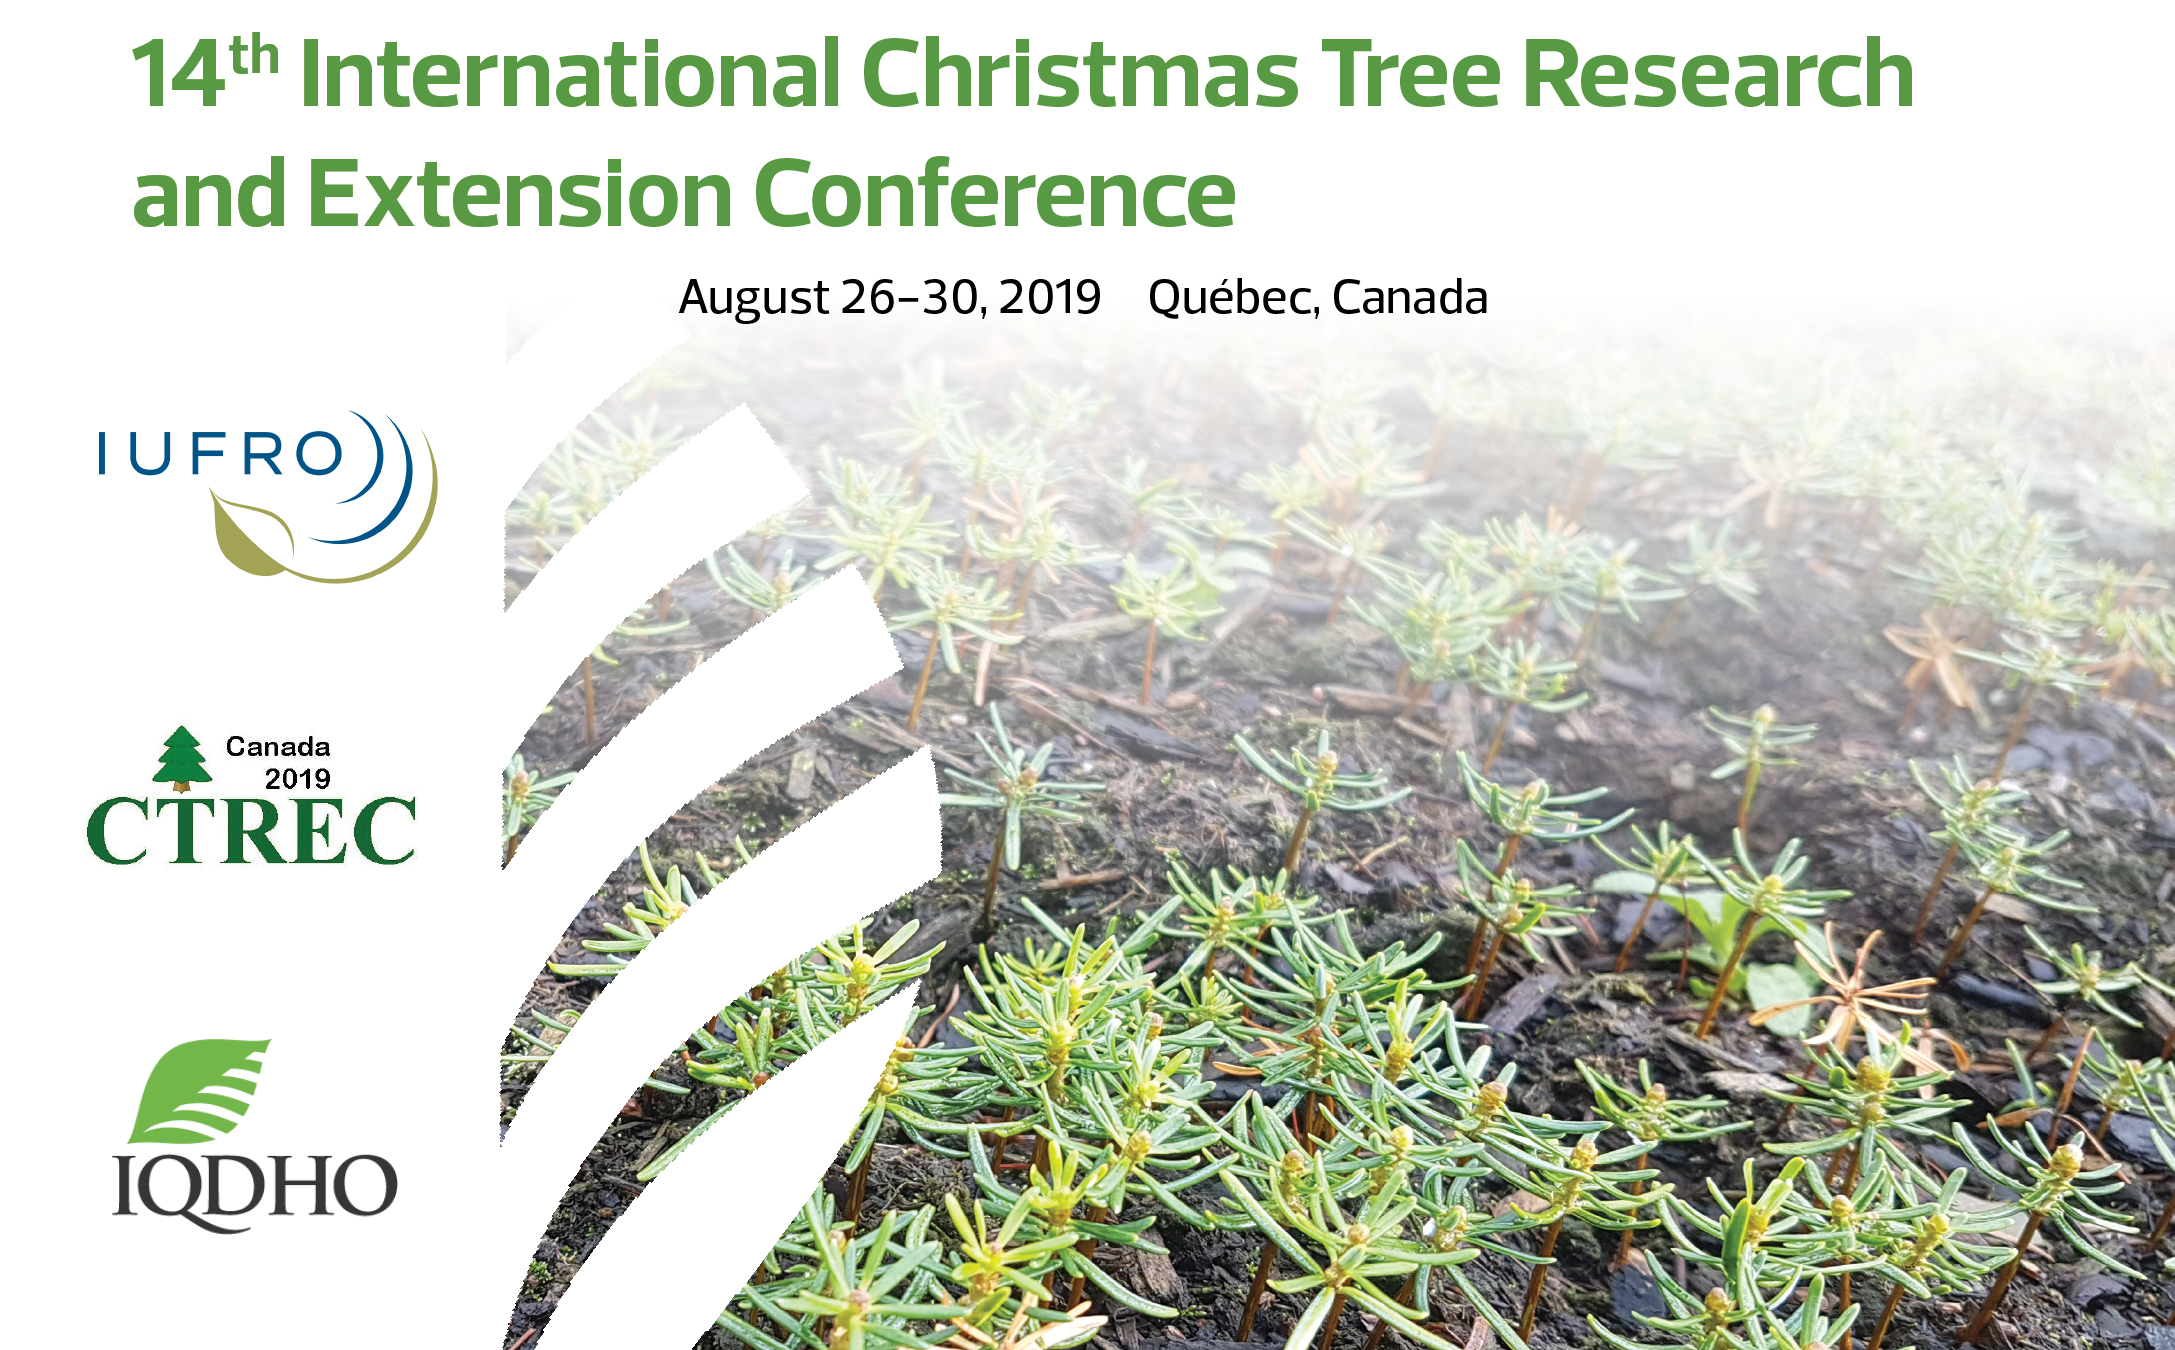 International Christmas Tree Research and Extension Conference 2019 - IQDHO